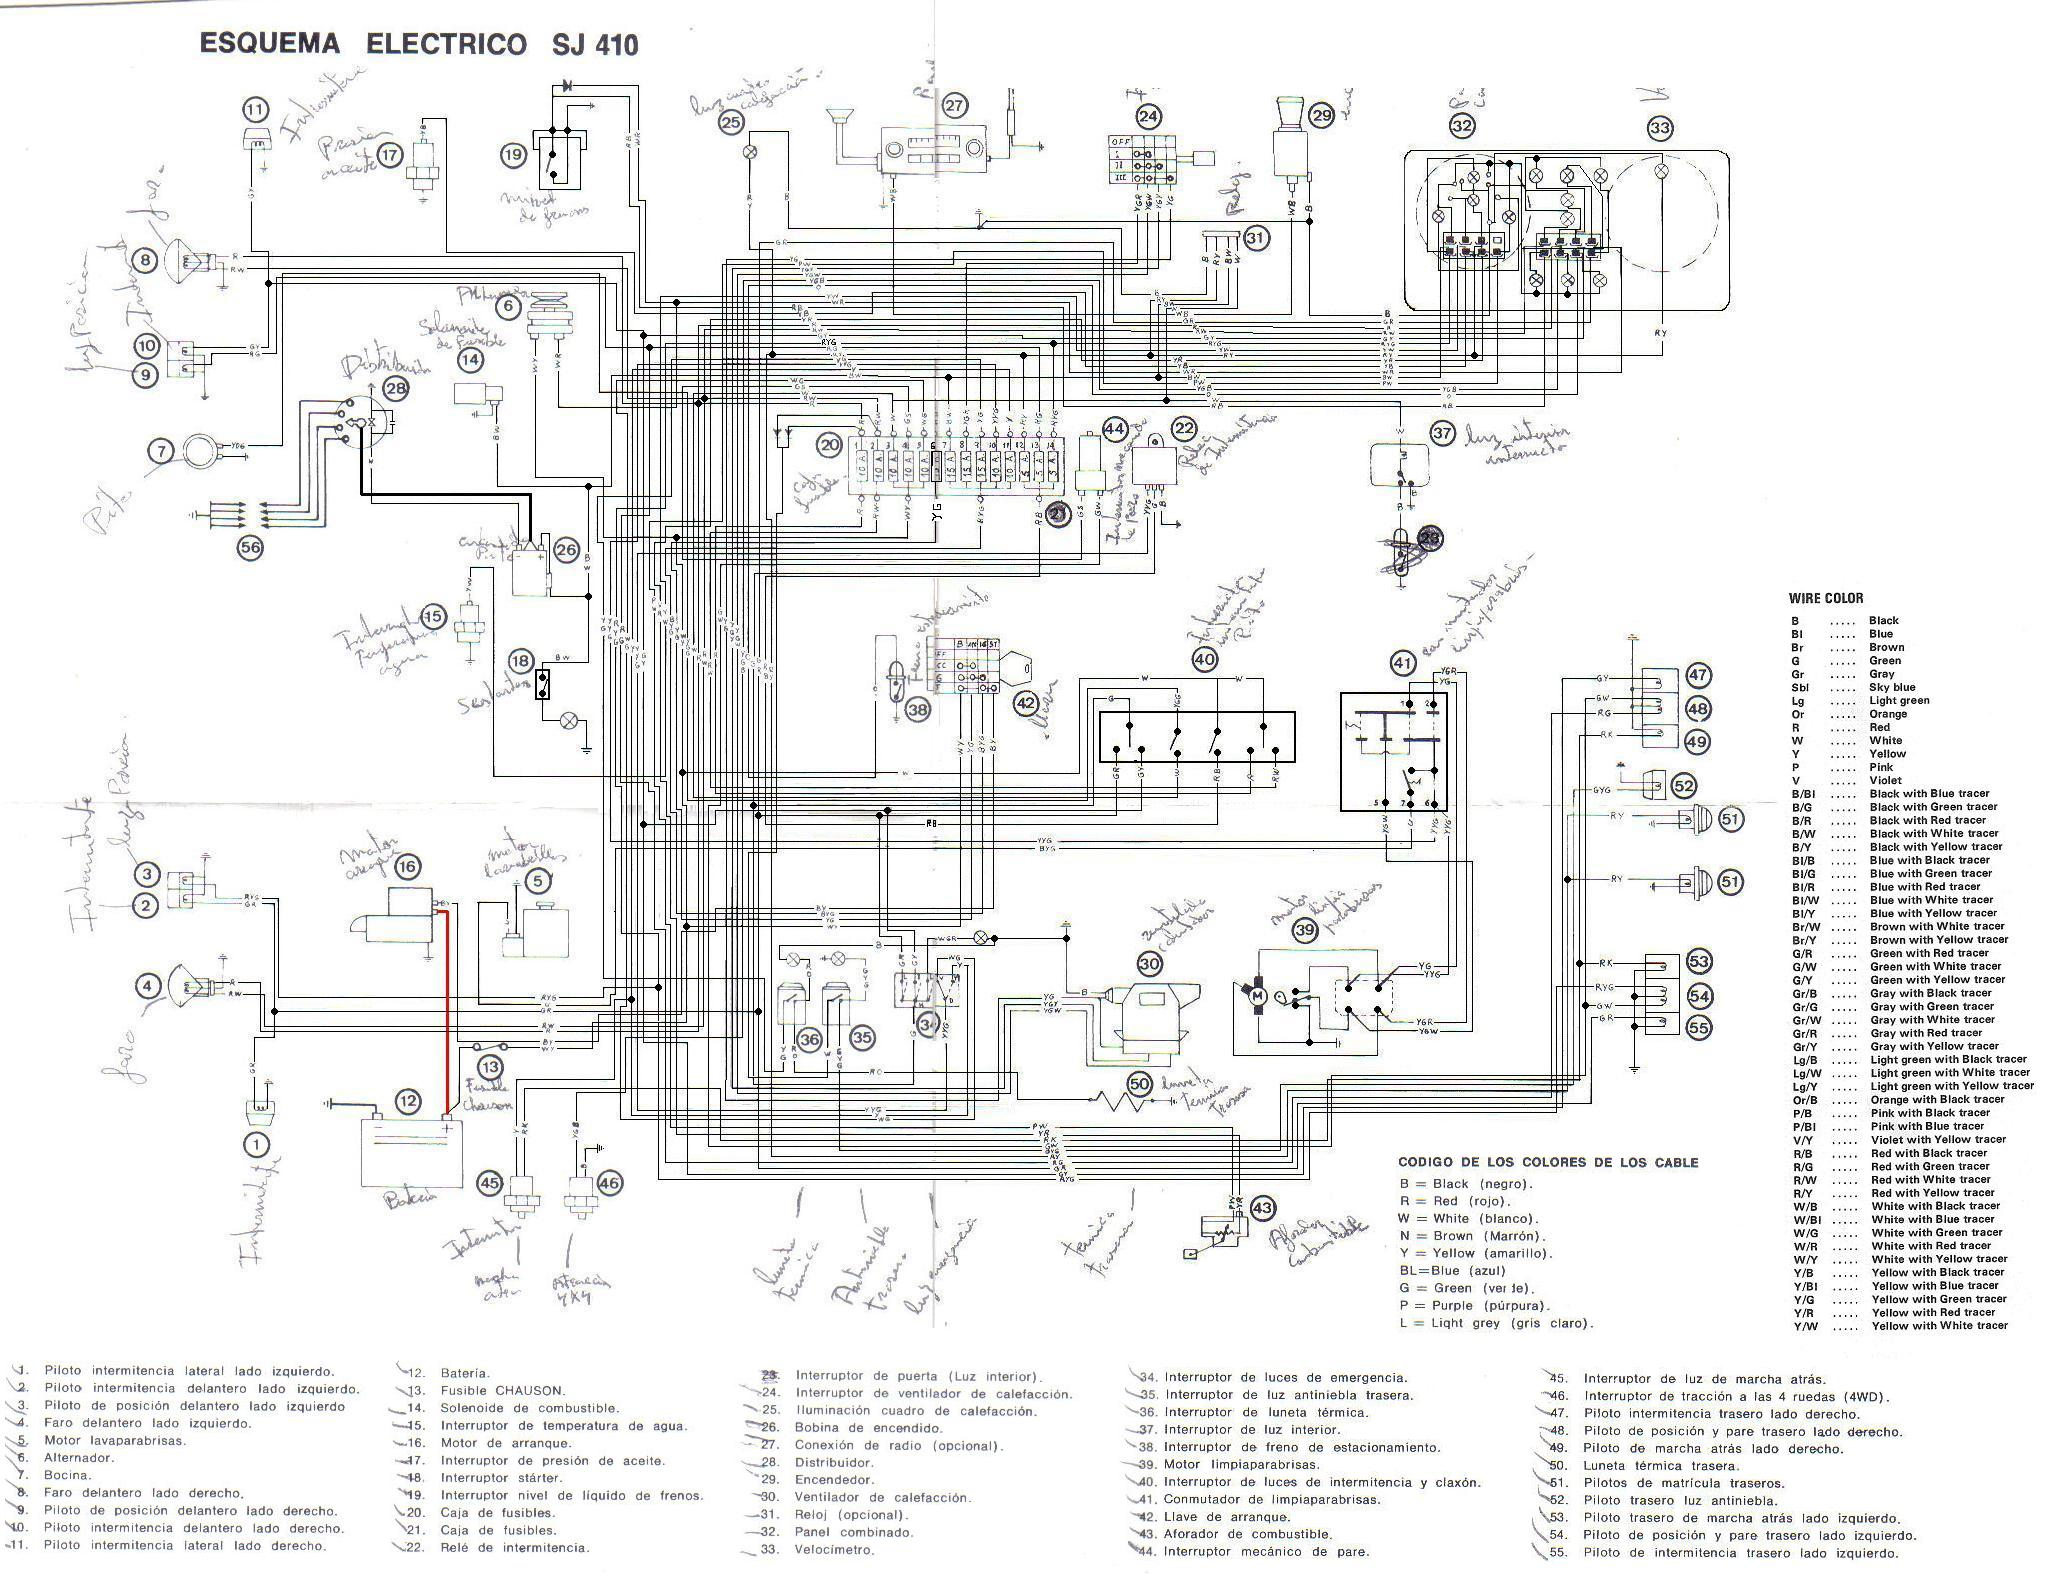 Suzuki Sierra Wiring Diagram from forum.suzukiclubuk.co.uk